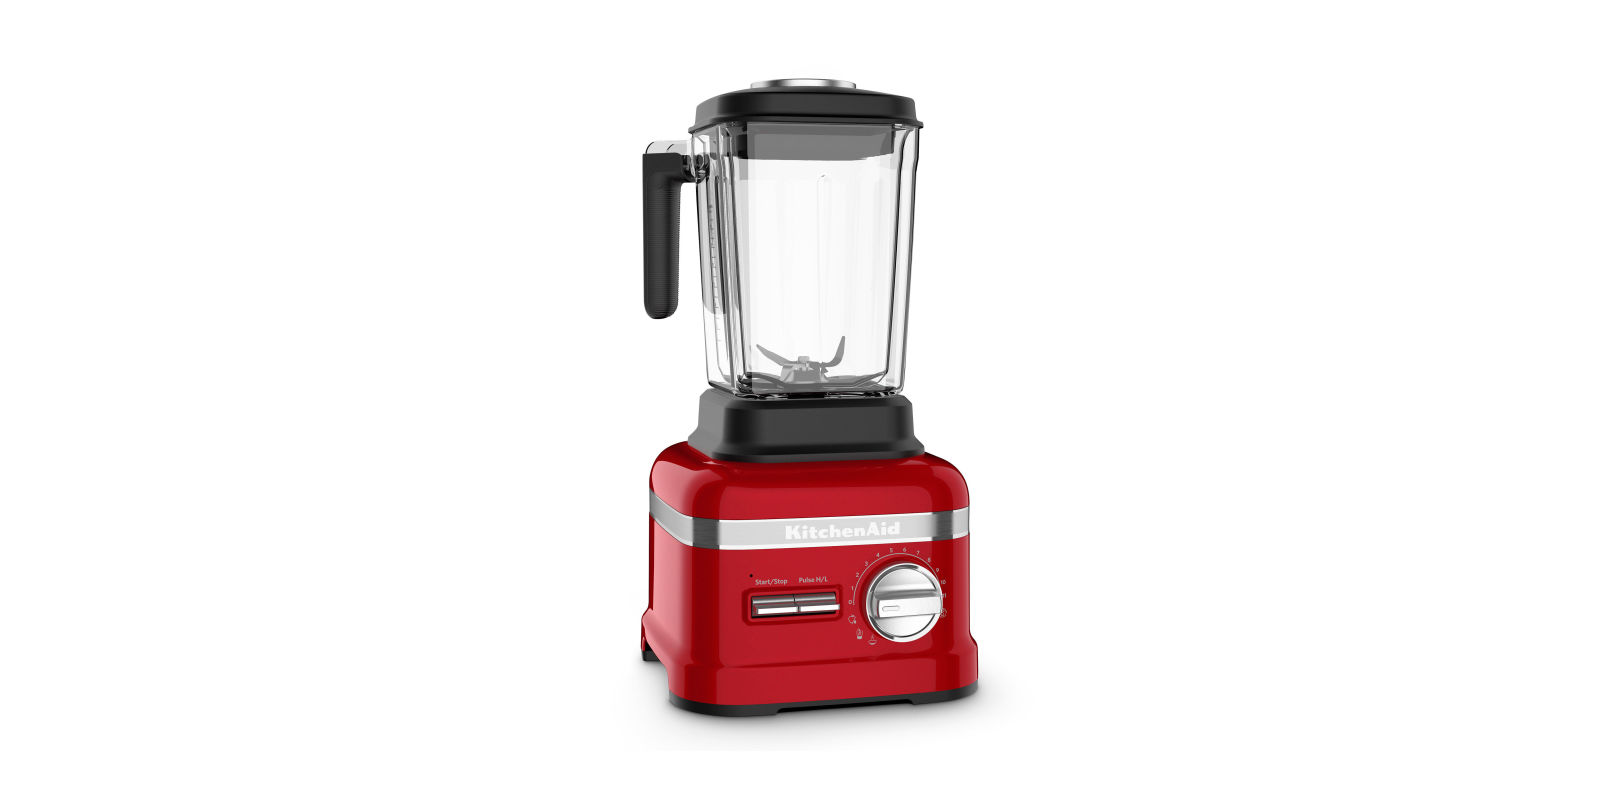 kitchenaid pro line blender #ksb8270ca review, price and features